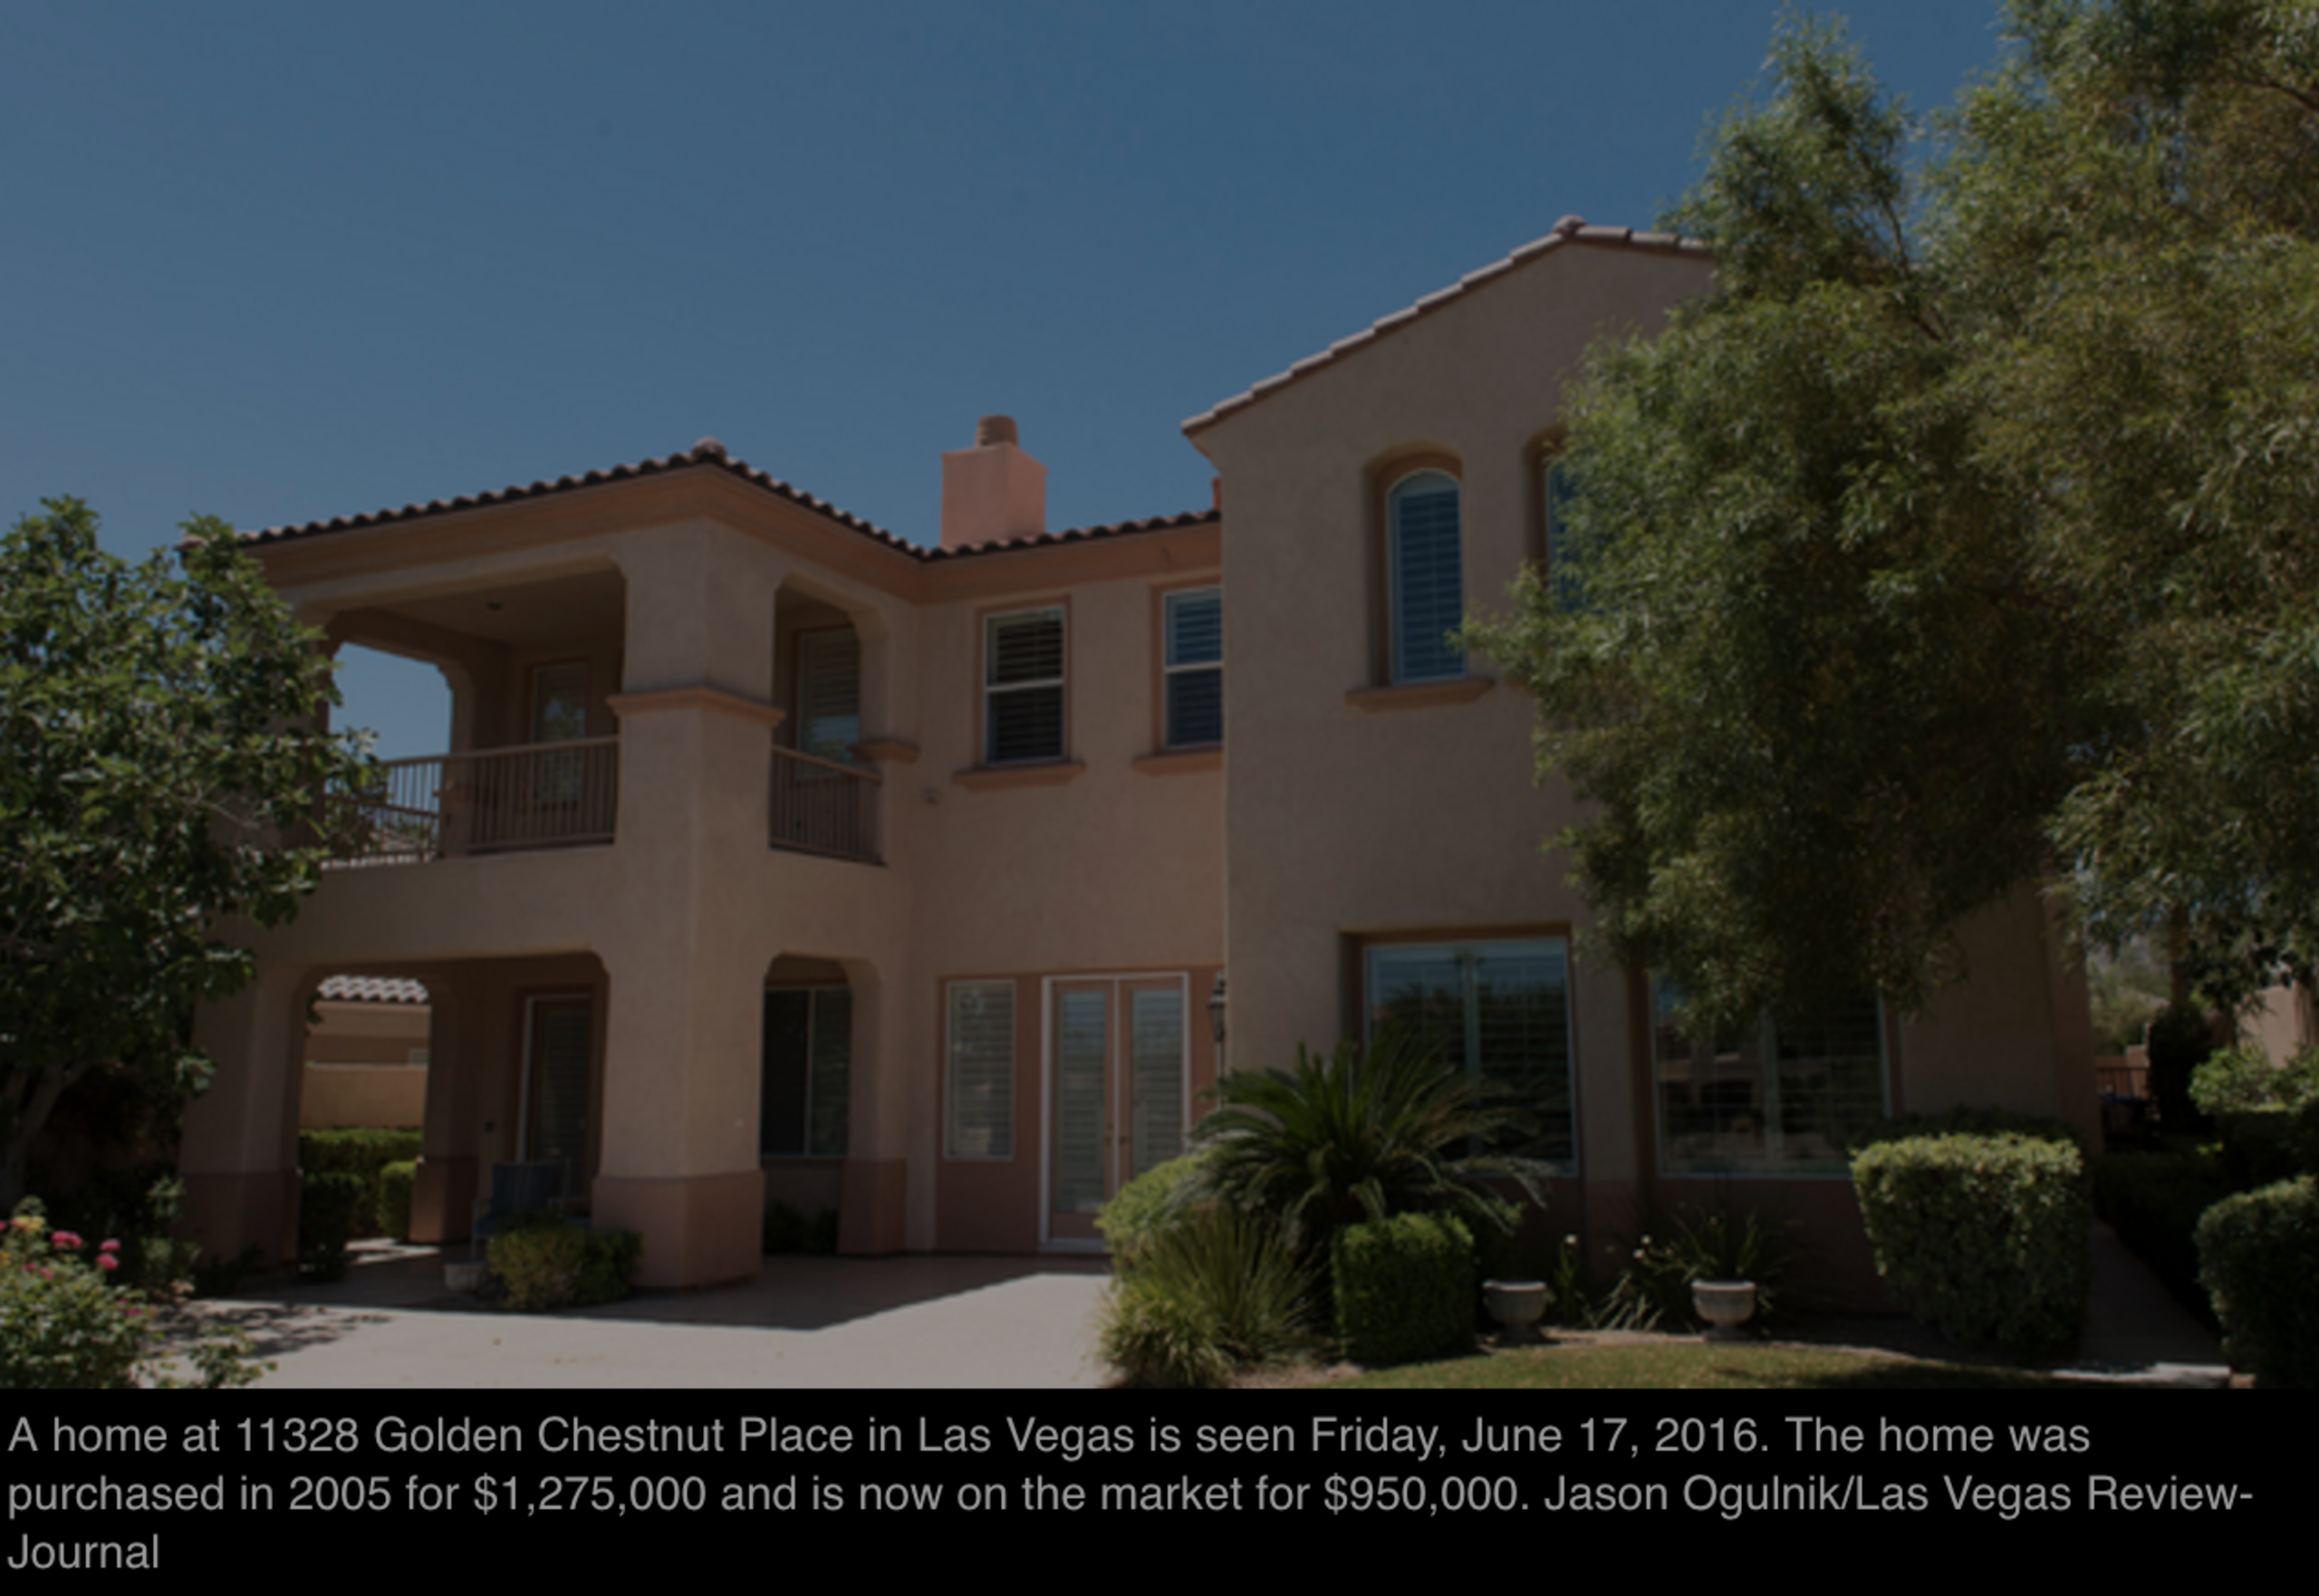 Underwater homeownership in Las Vegas dips below 20 percent